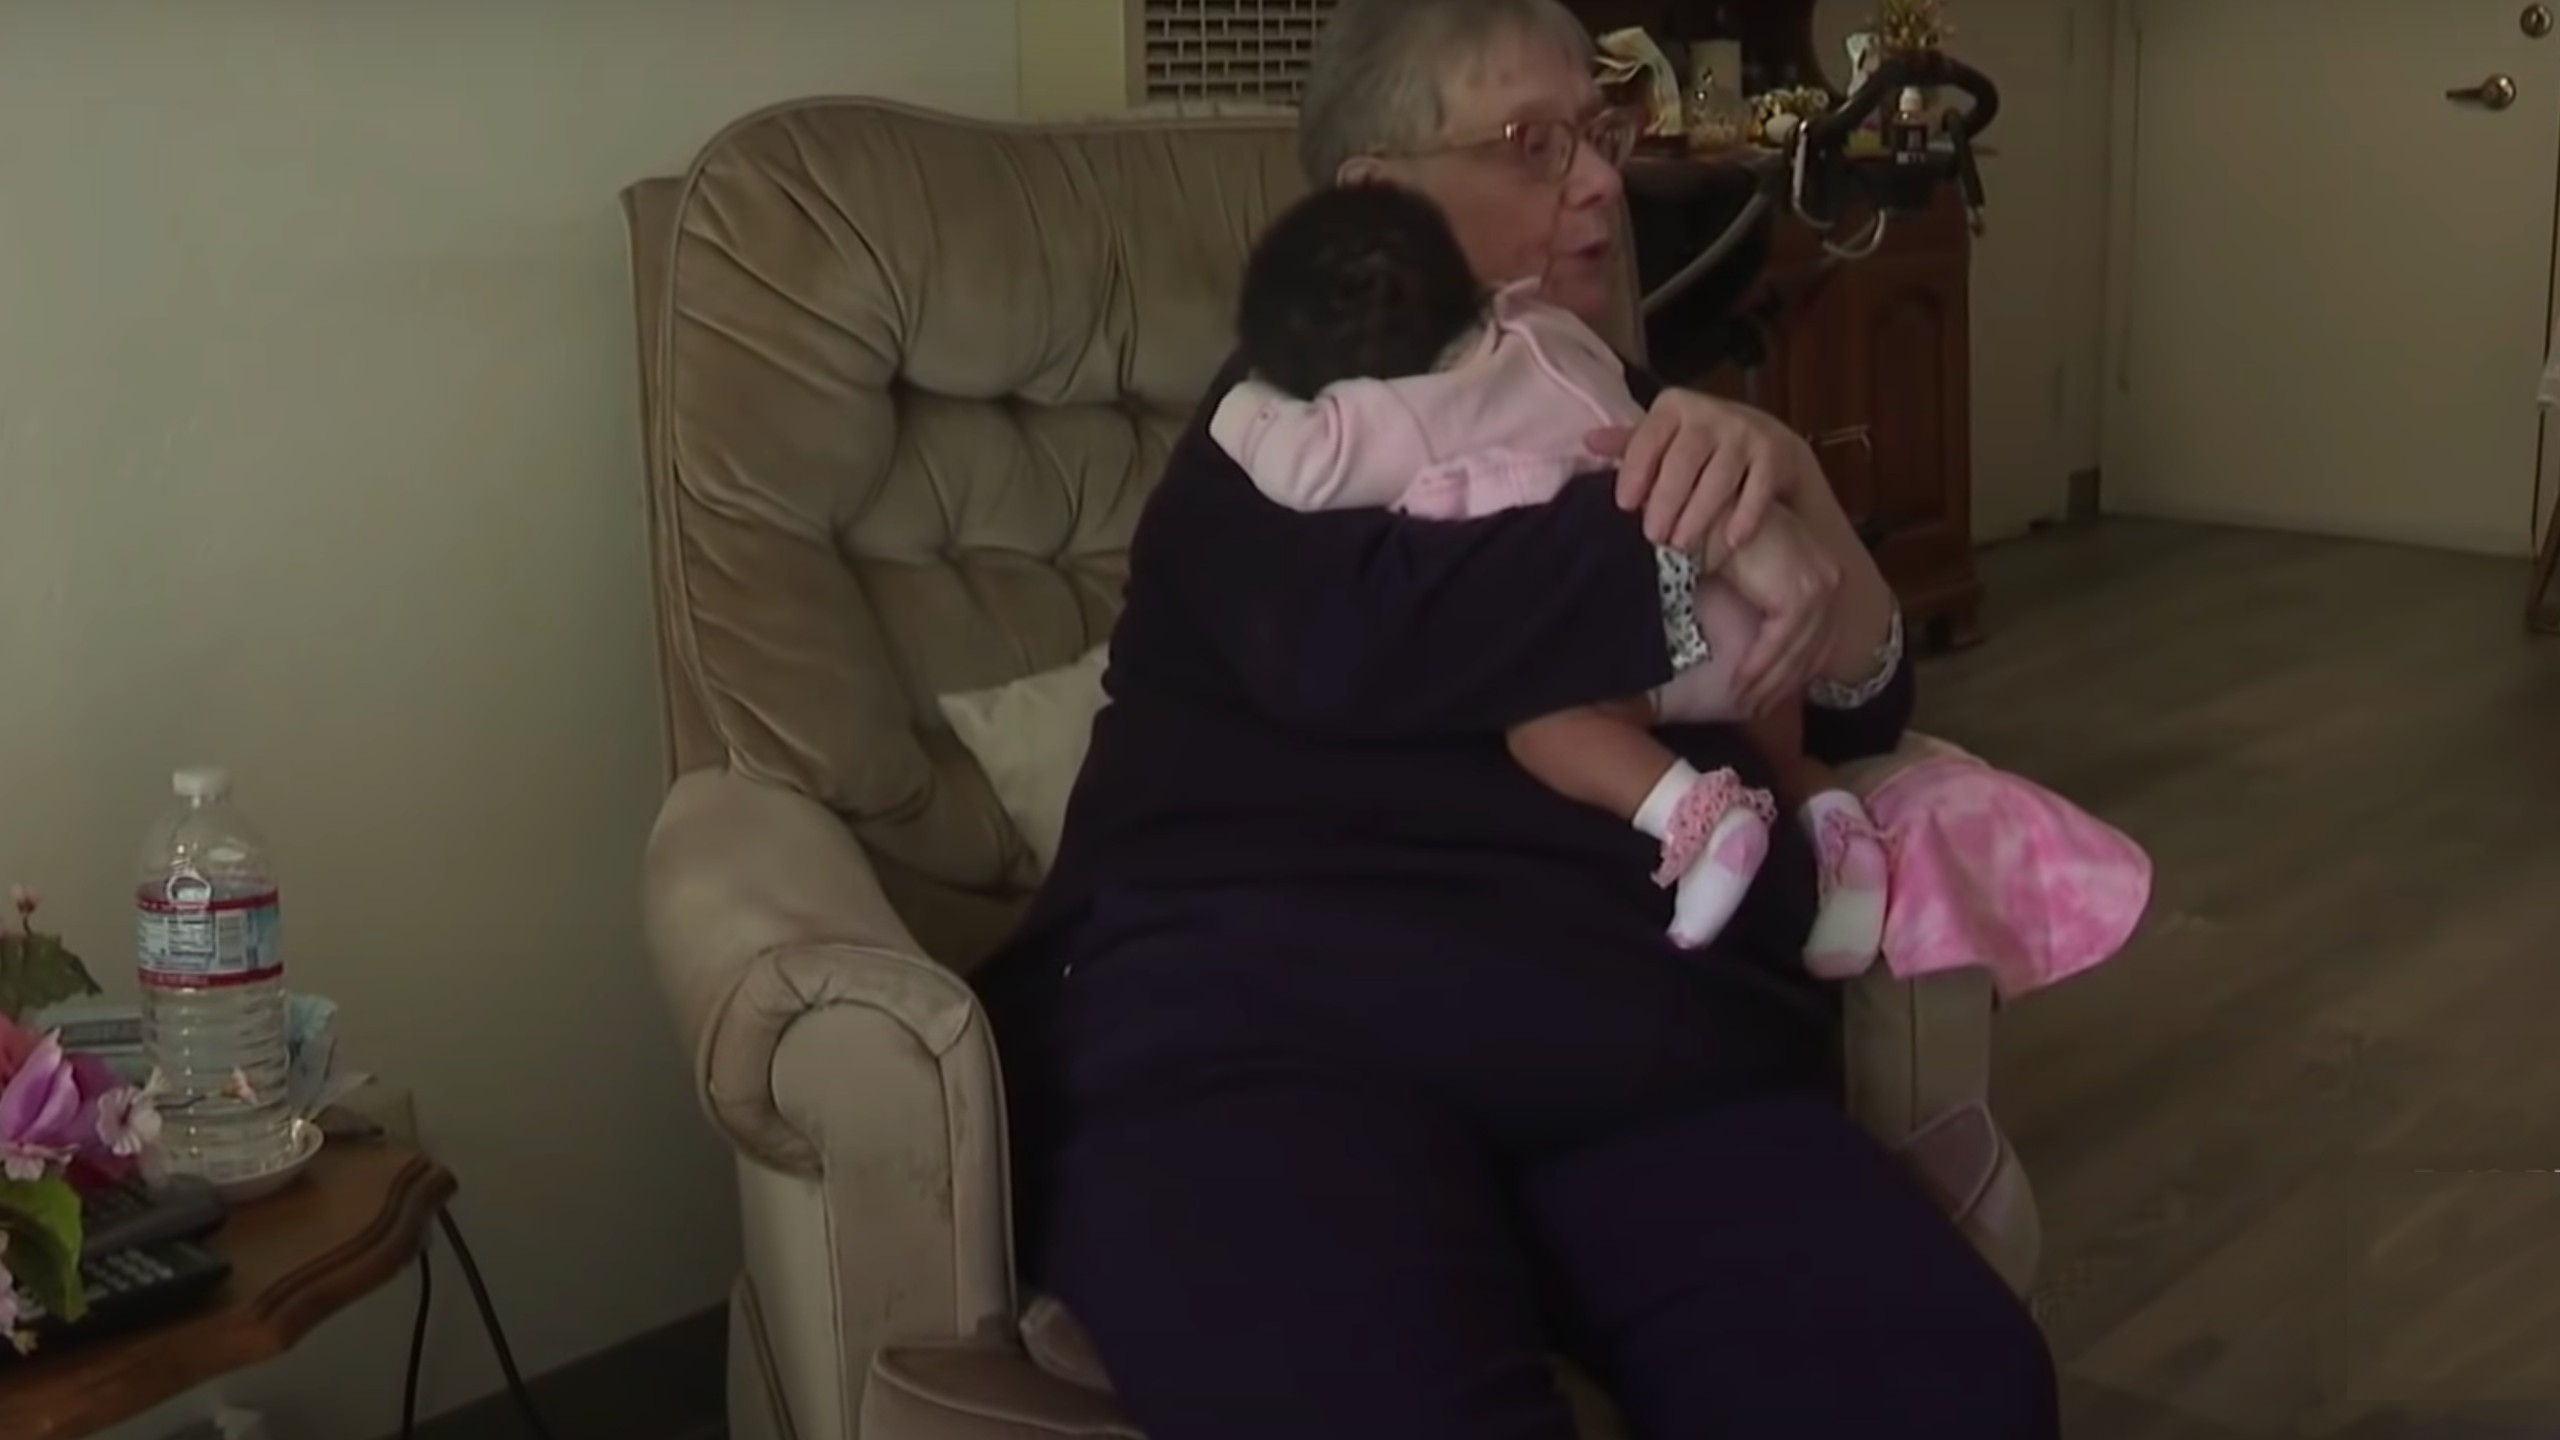 78-year-old fosters over 80 infants in 34 years